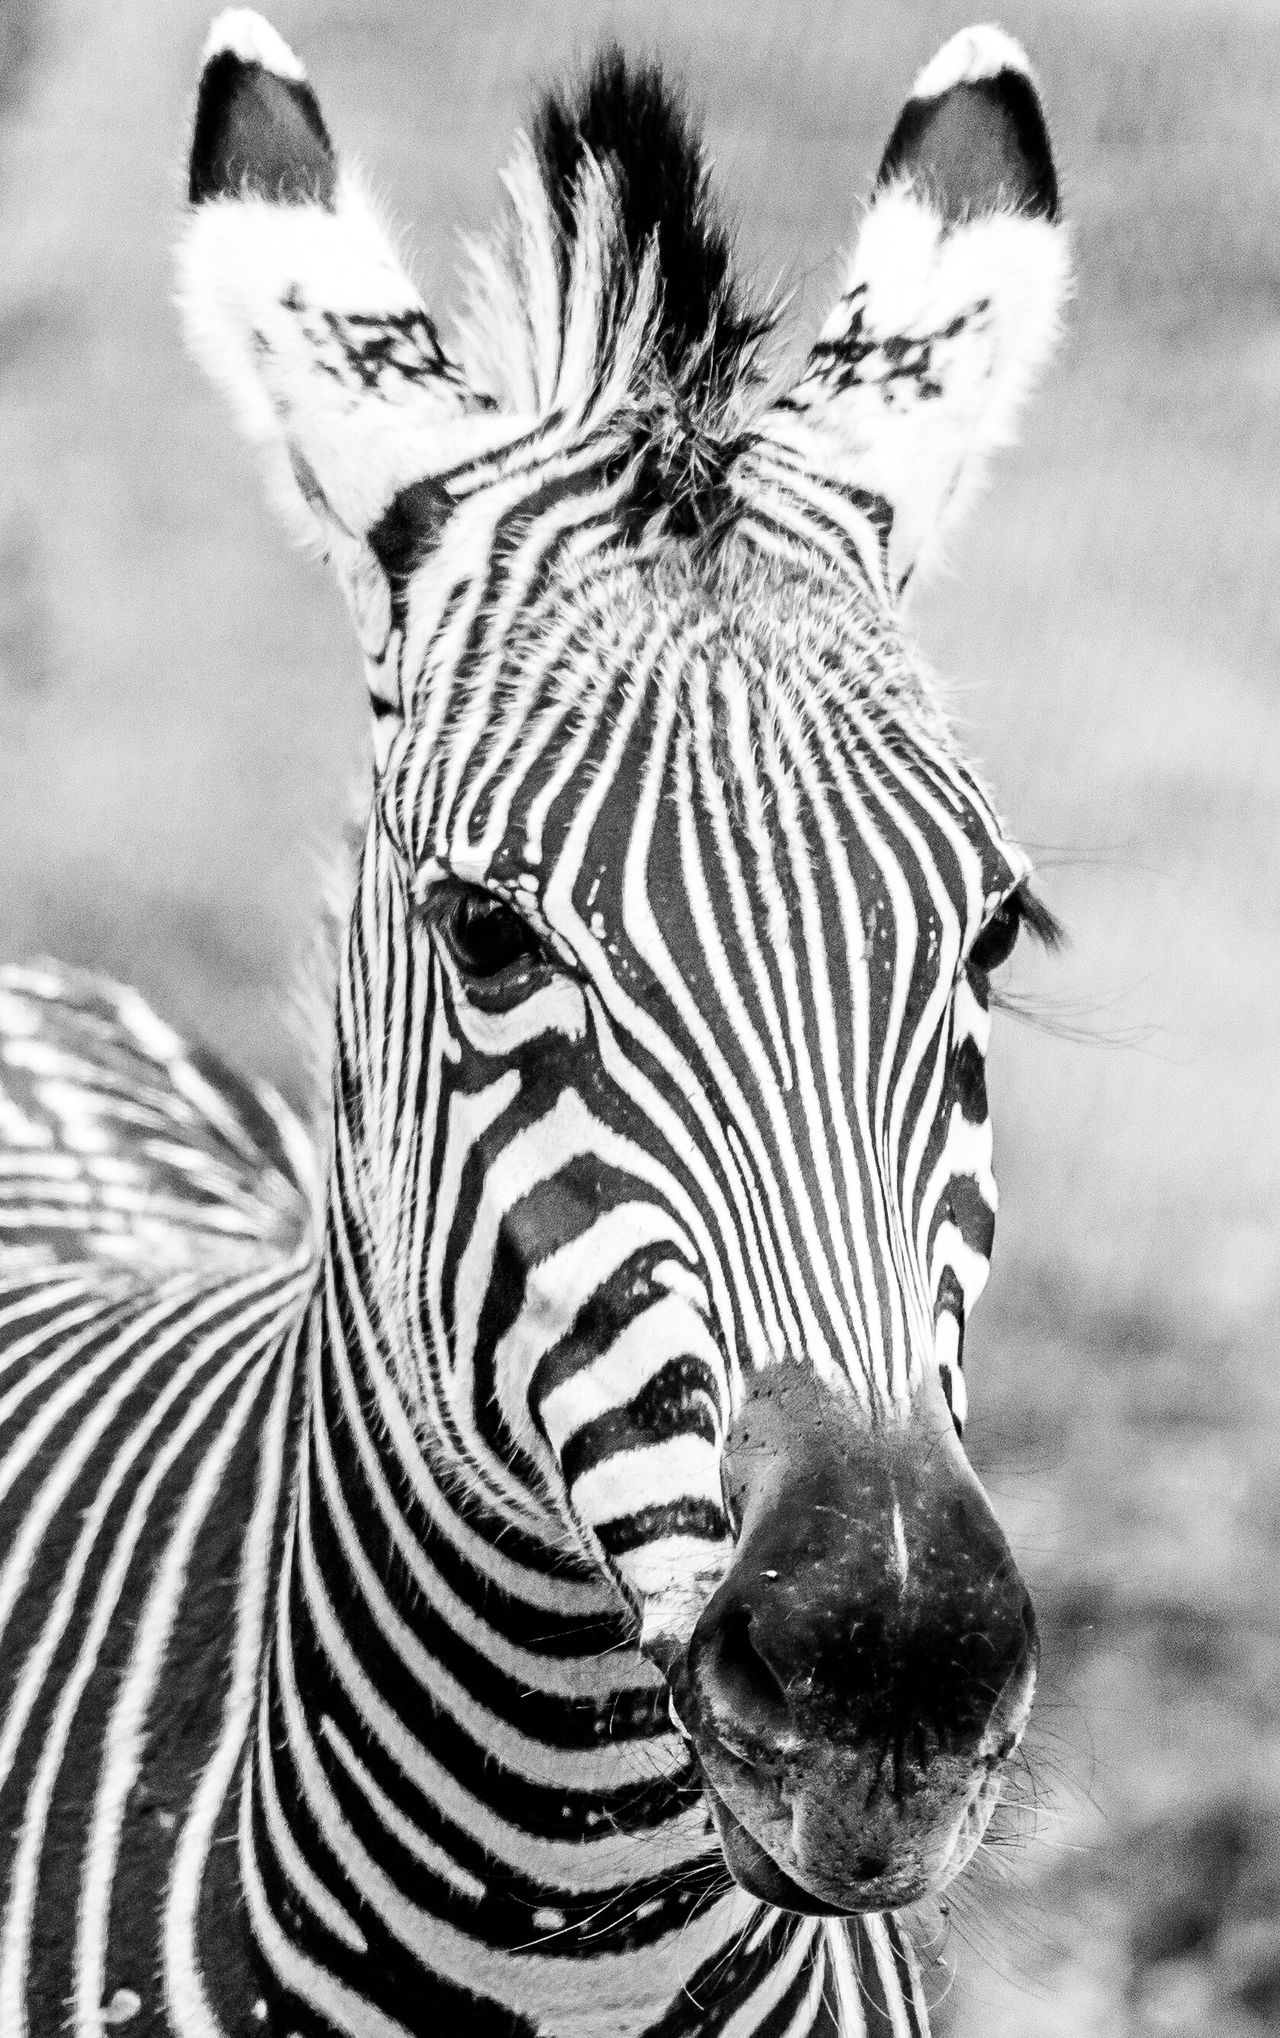 A Beautiful Zebra at LakeKariba Zimbabwe Wildlife Wildlife Photography Nature Nature_collection Safari Africa Black And White Blackandwhite Animal Photography